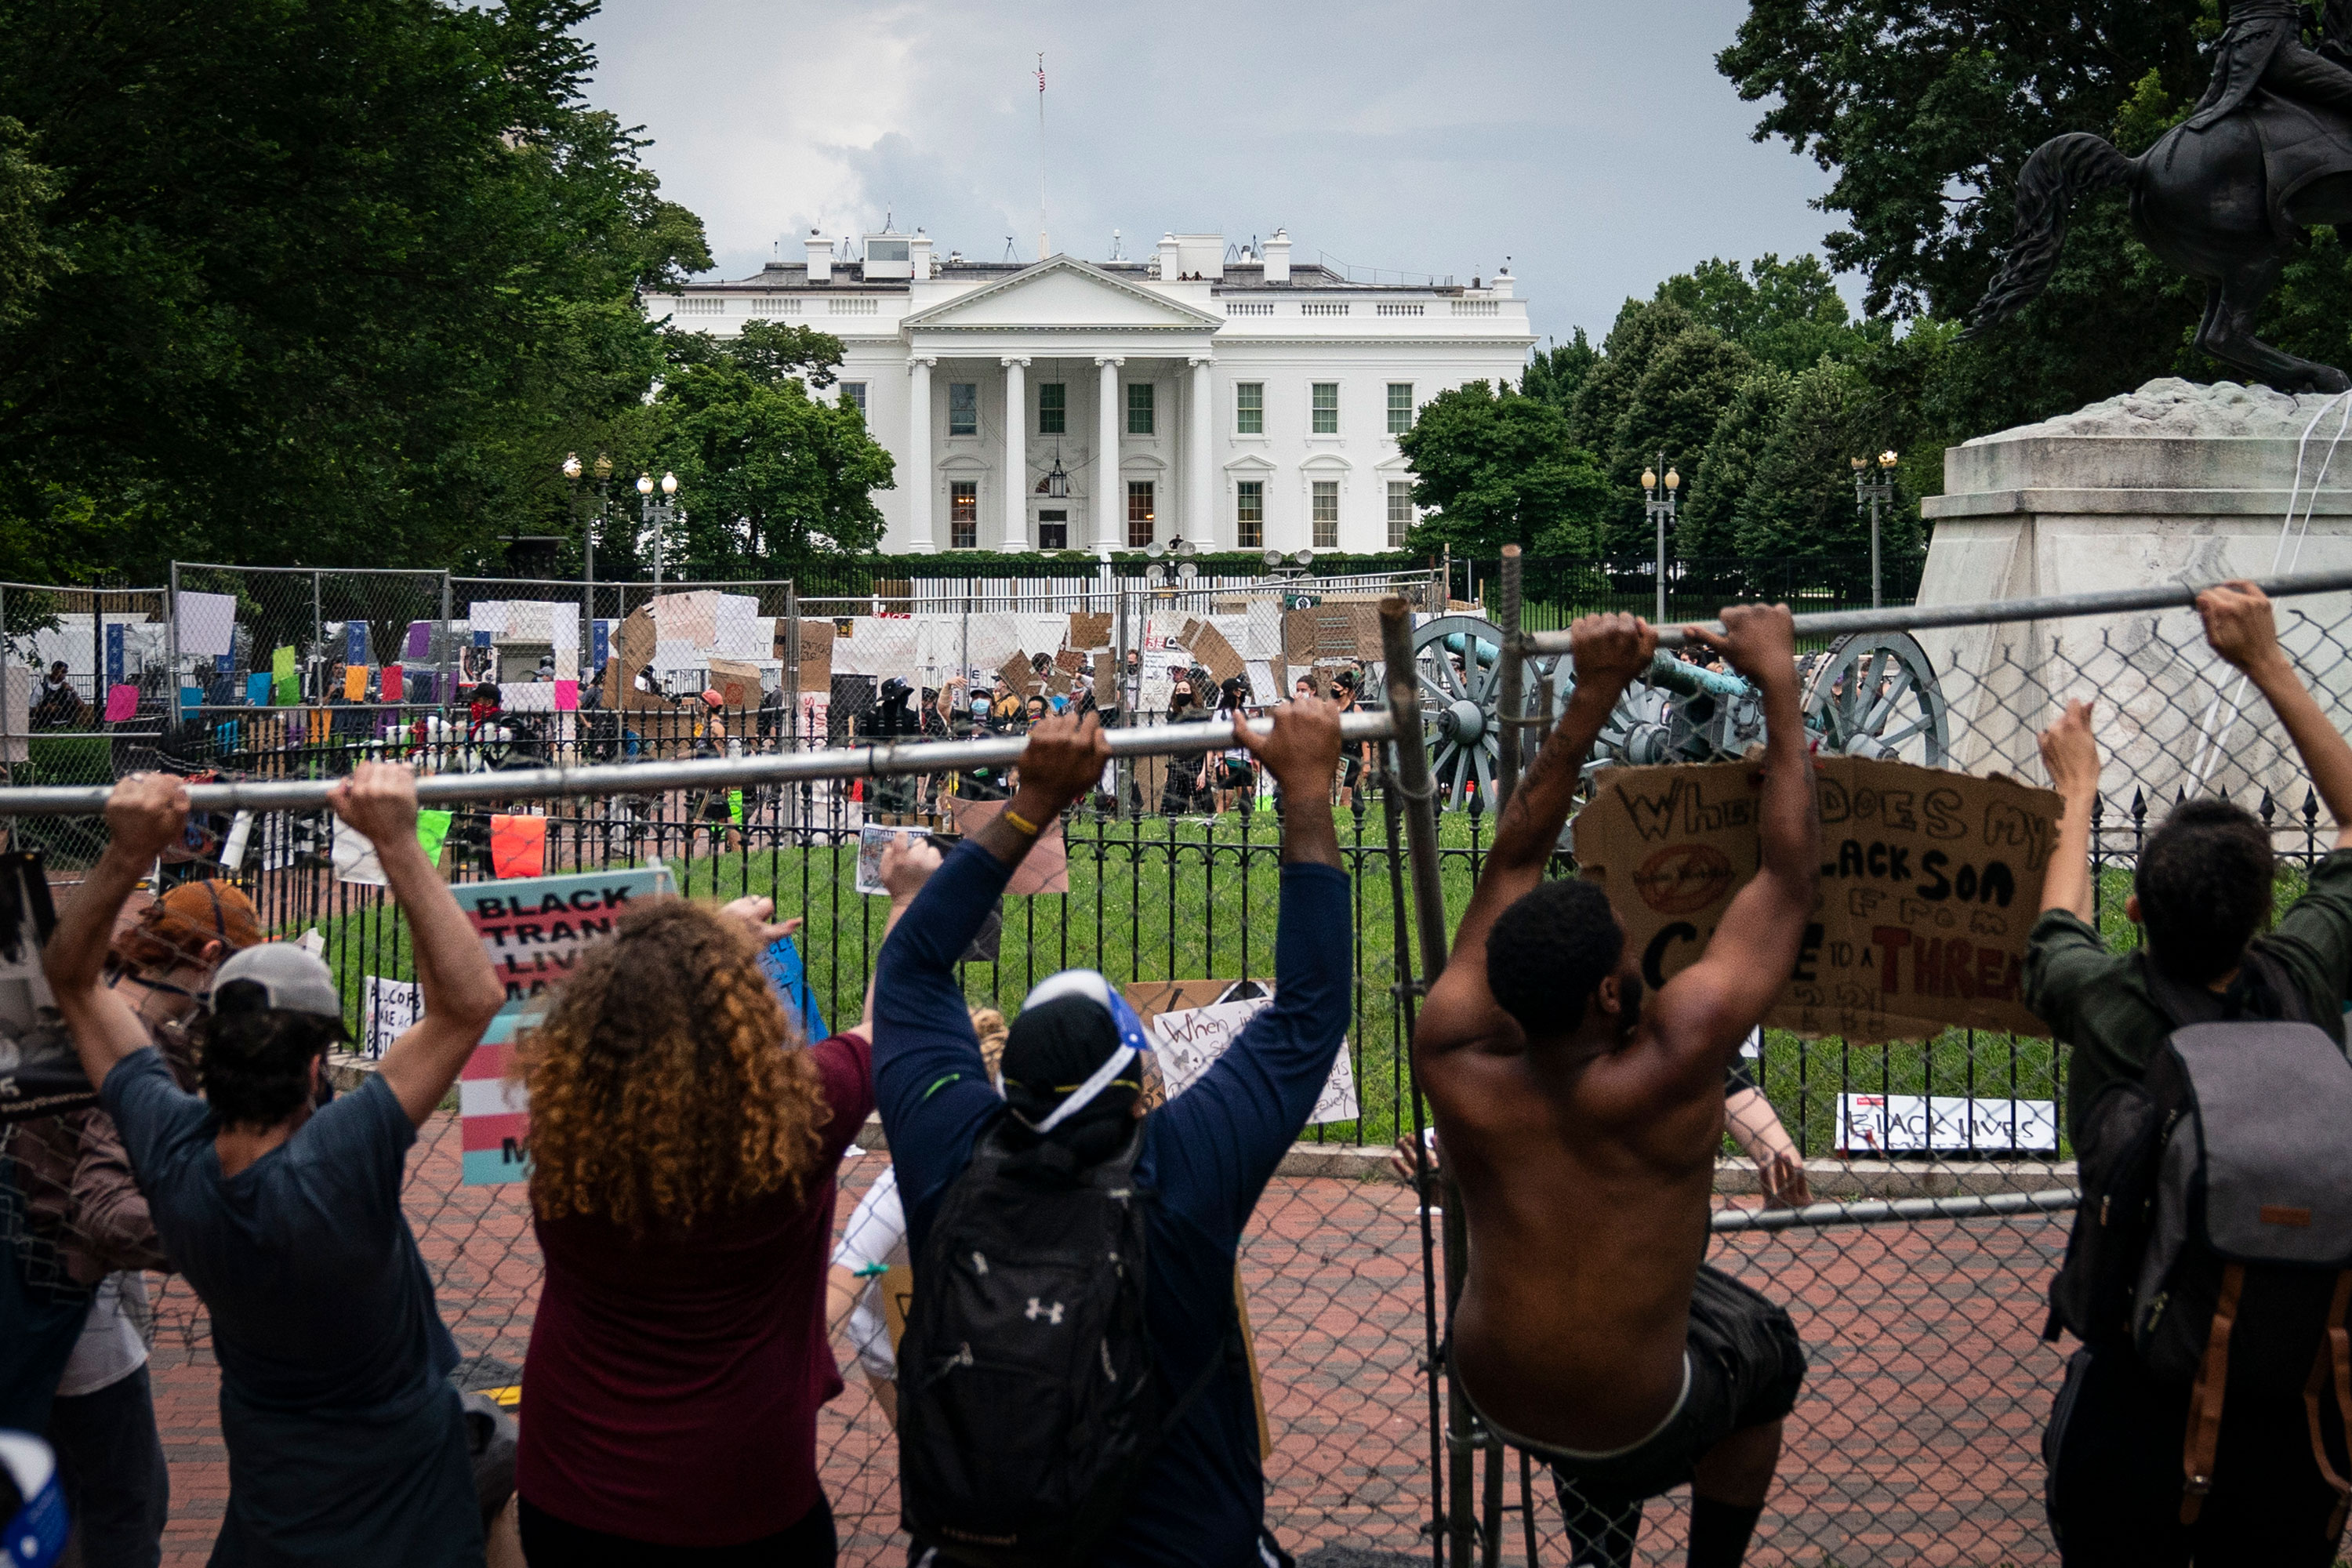 Protesters pull down a fence surrounding the statue of Andrew Jackson in Lafayette Square near the White House on June 22 in Washington.